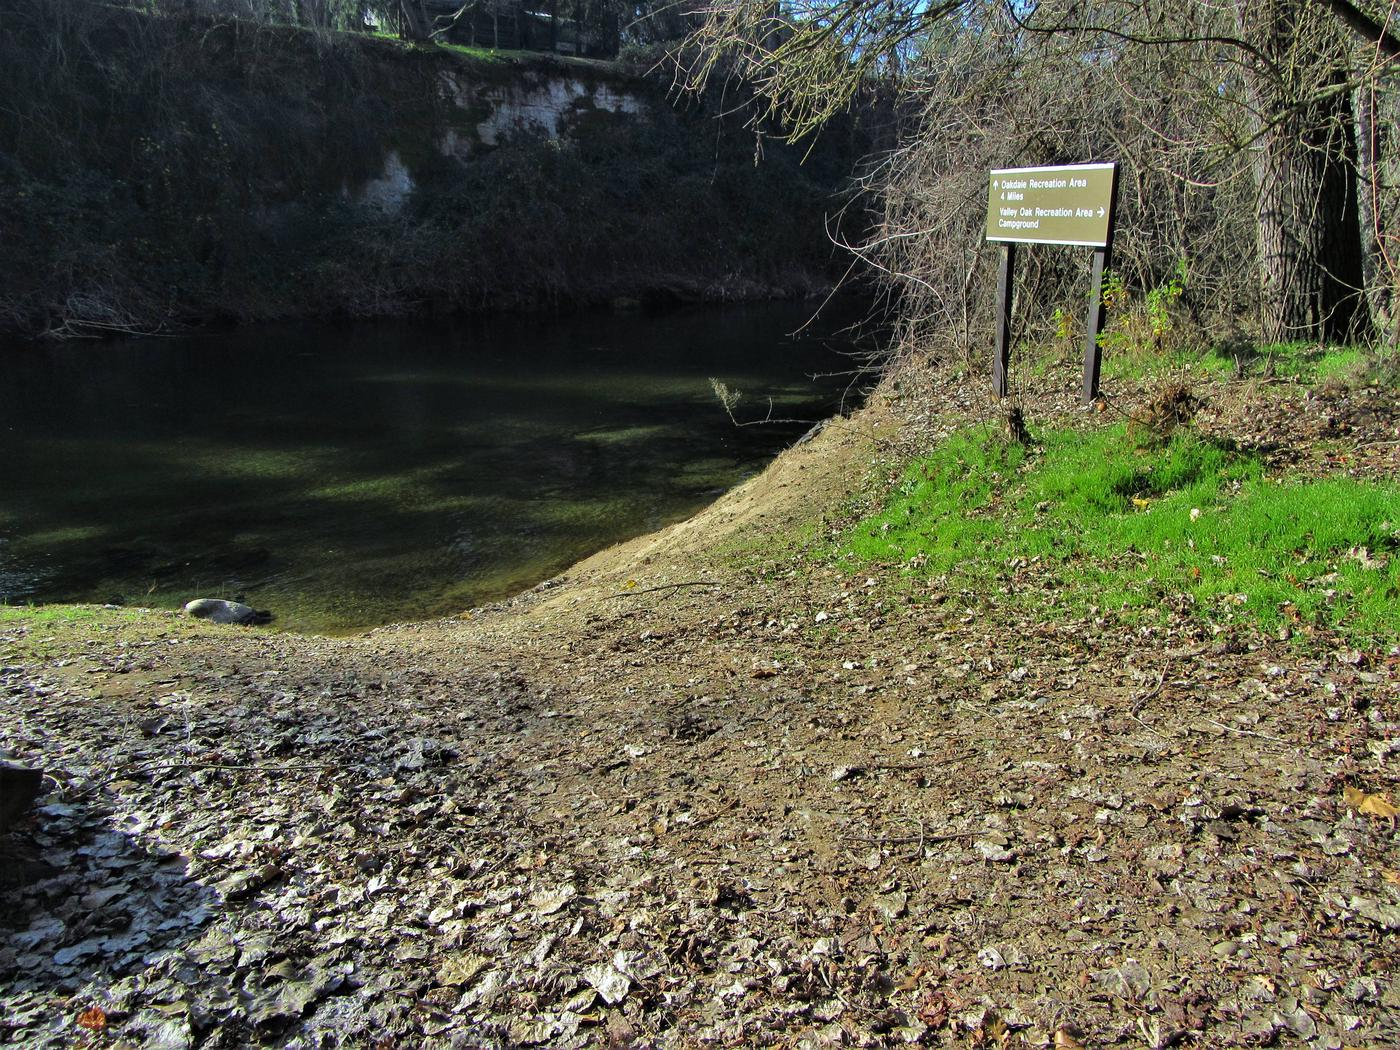 Valley Oak Recreation Area LaunchBoat launch conveniently located next to the Valley Oak Campground